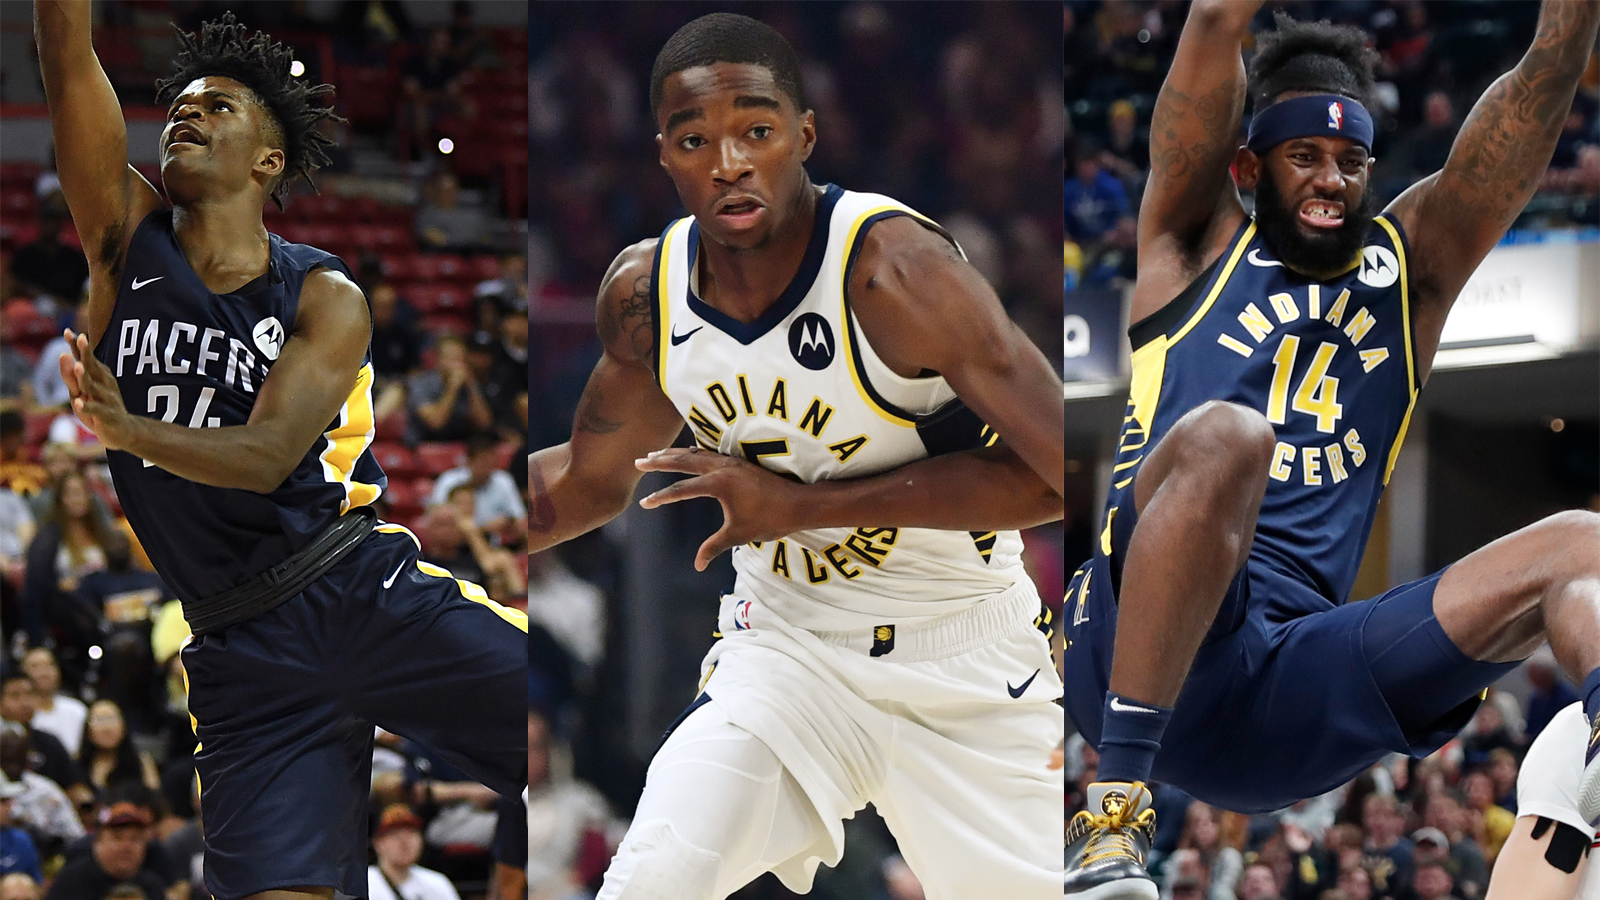 Pacers assign Johnson, Sampson and Sumner to Fort Wayne